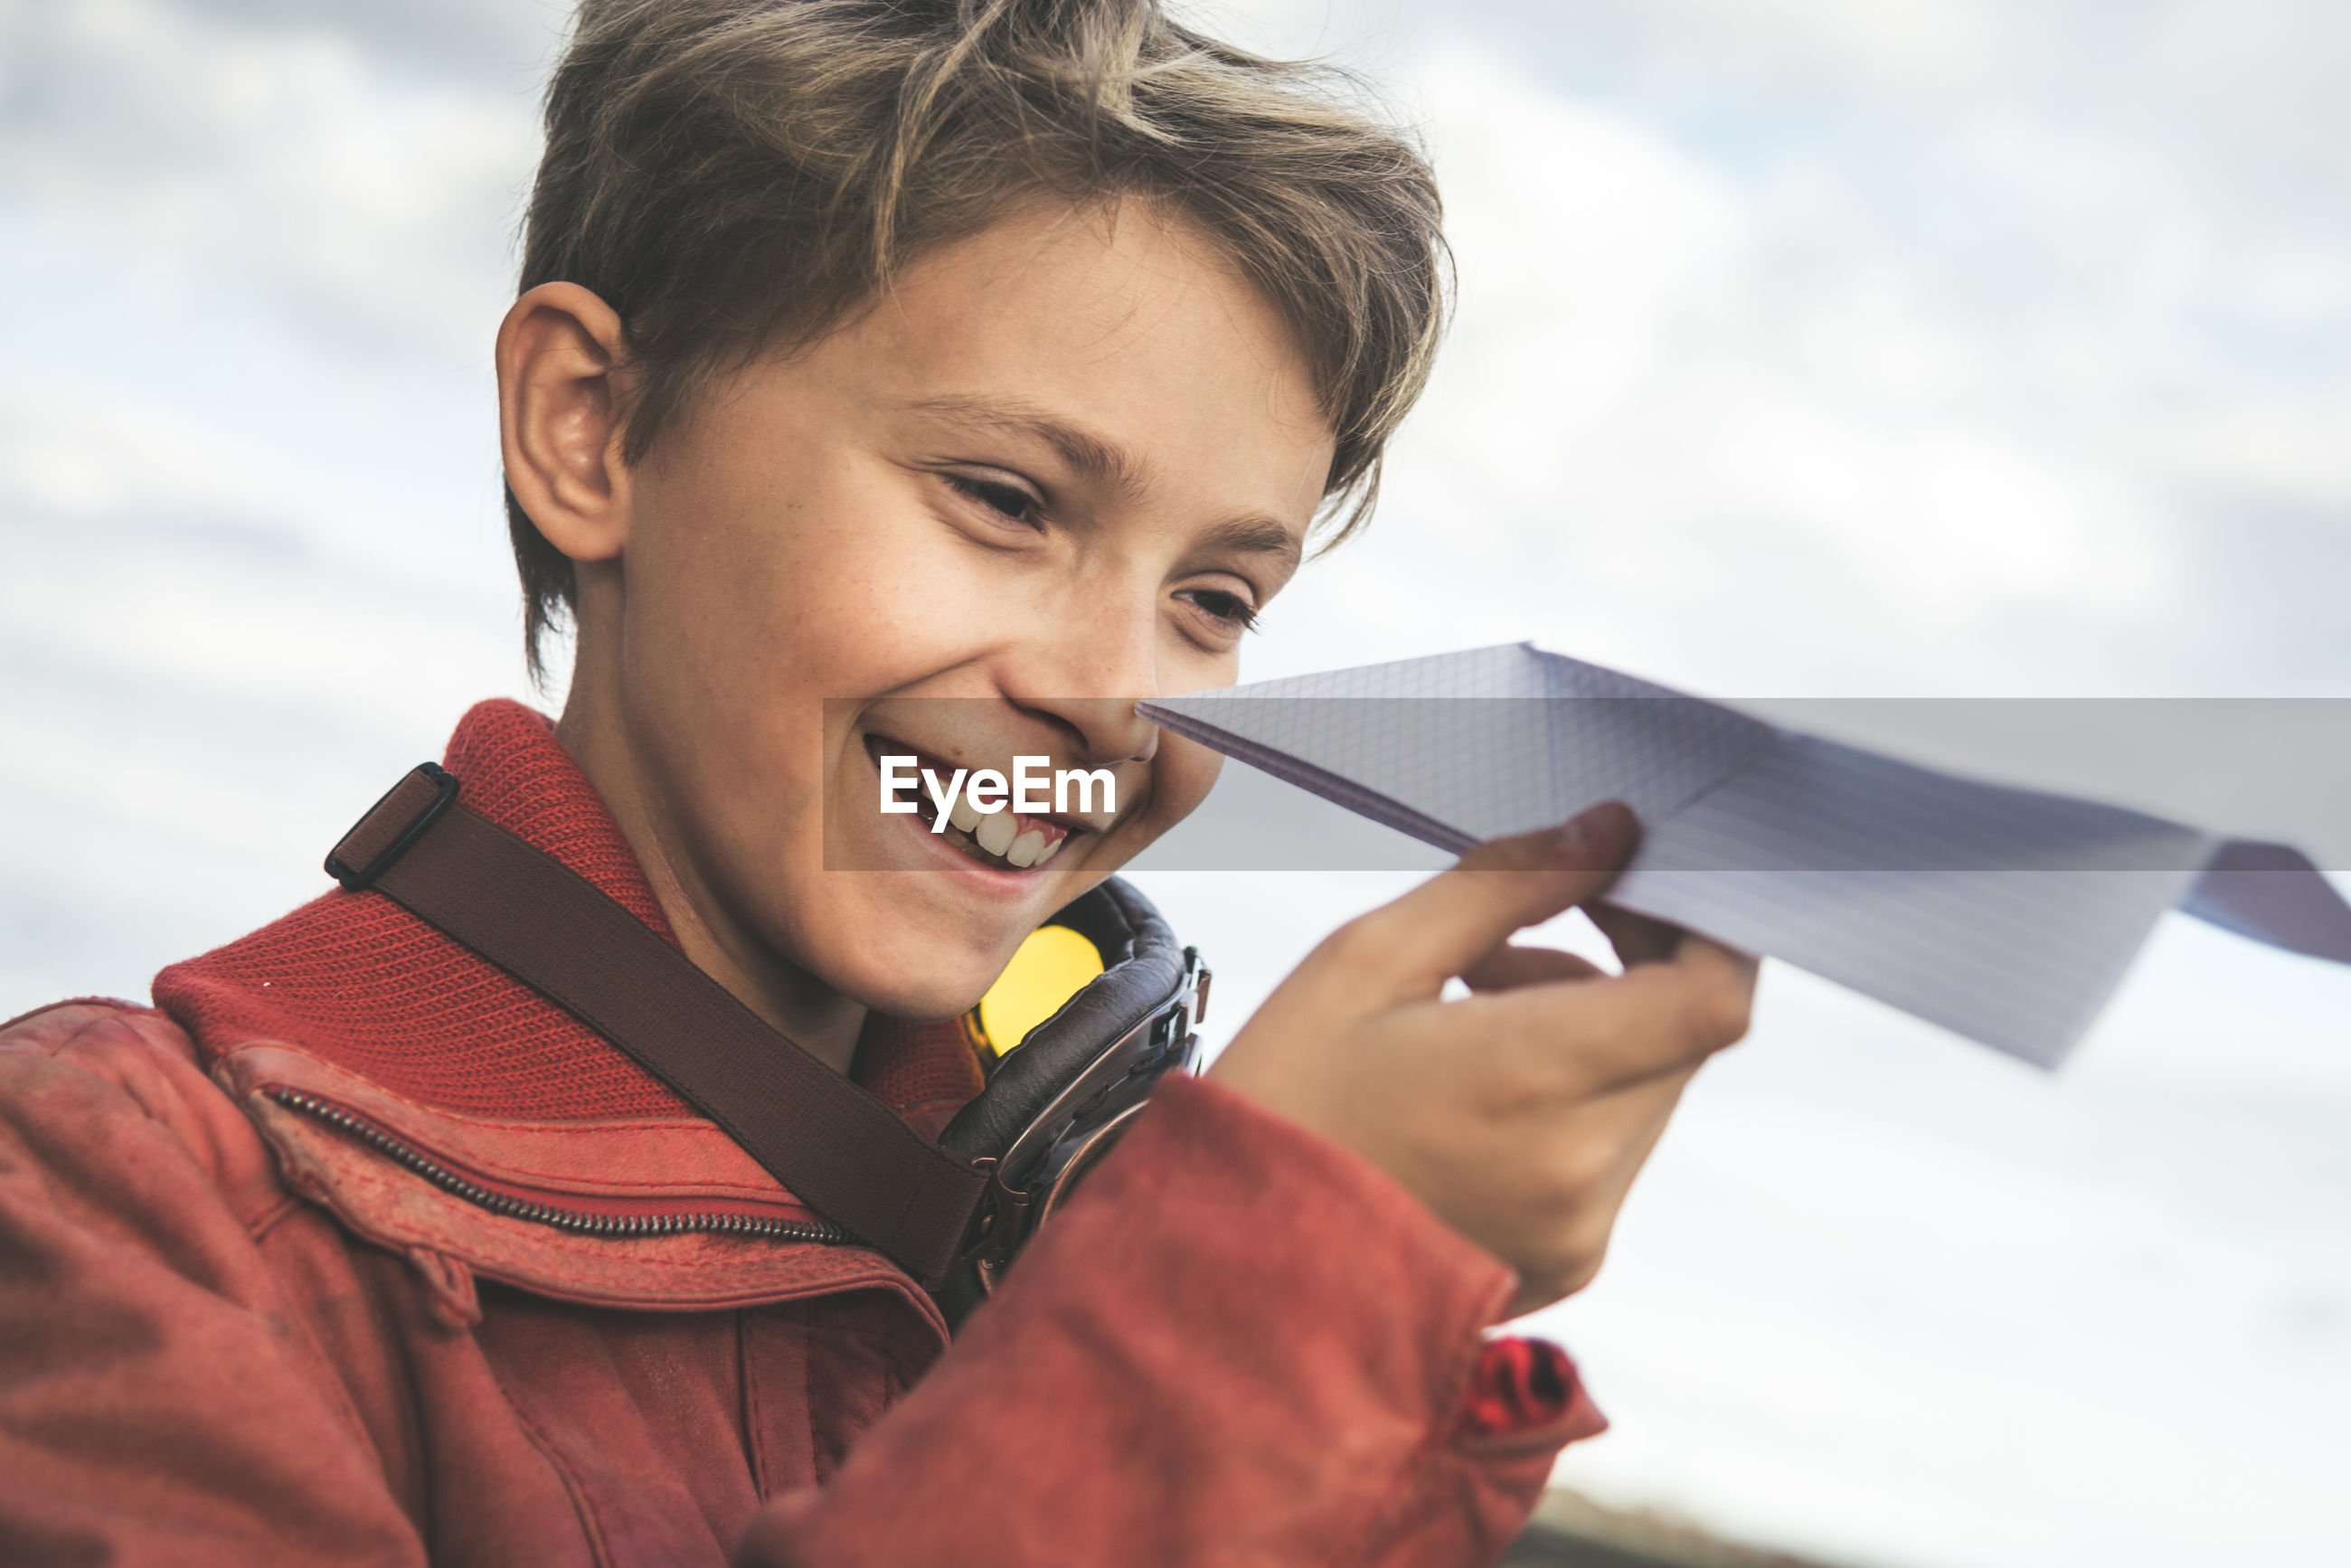 Smiling boy playing with paper airplane against cloudy sky